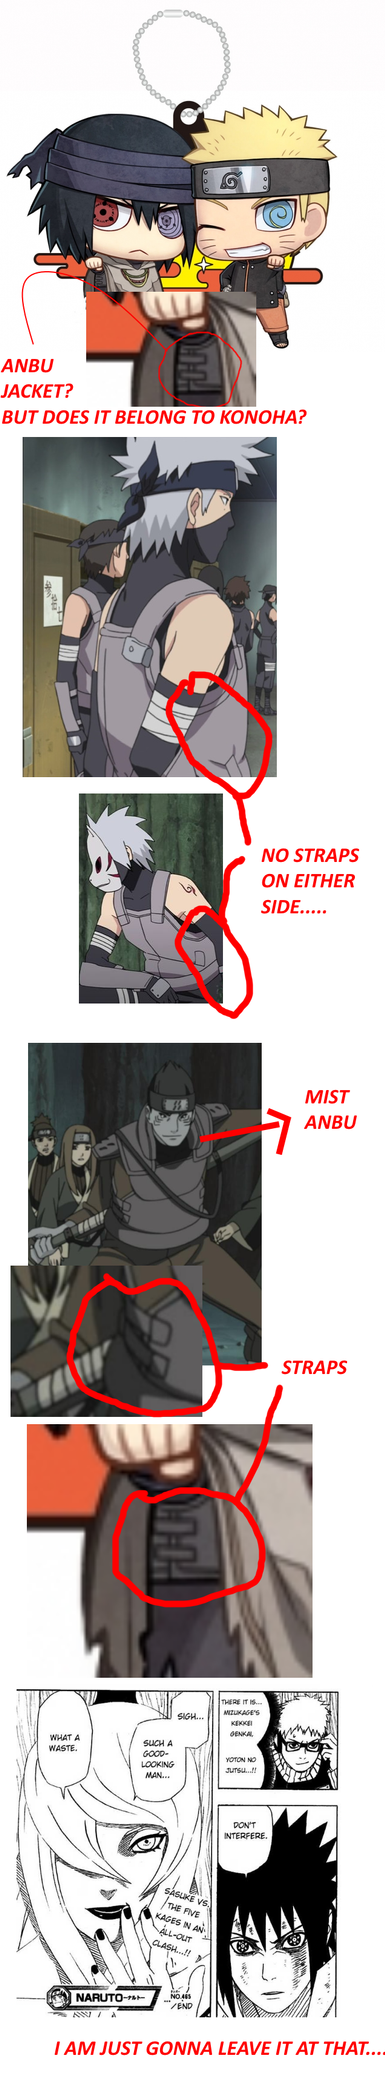 IS SASUKE AN ANBU FROM KONOHA IN THE LAST MOVIE? by adel123456789